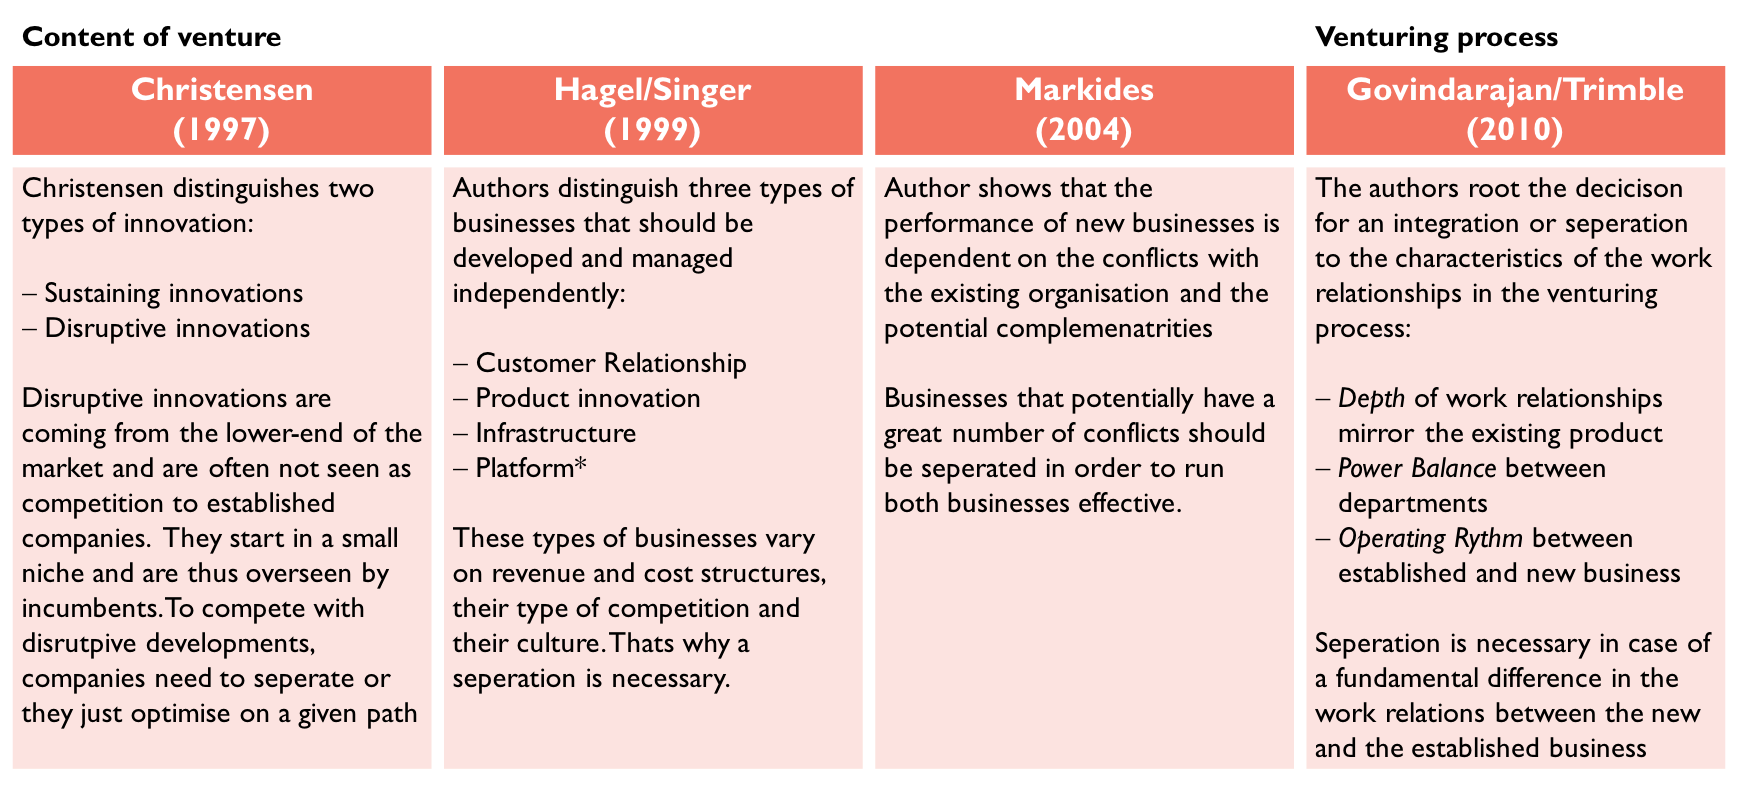 *Platform businesses have not been in focus by Hagel/Singer (1999), but do strongly differ from a Product Innovation Business, a Customer Relationship Business or a Infrastructure Business.